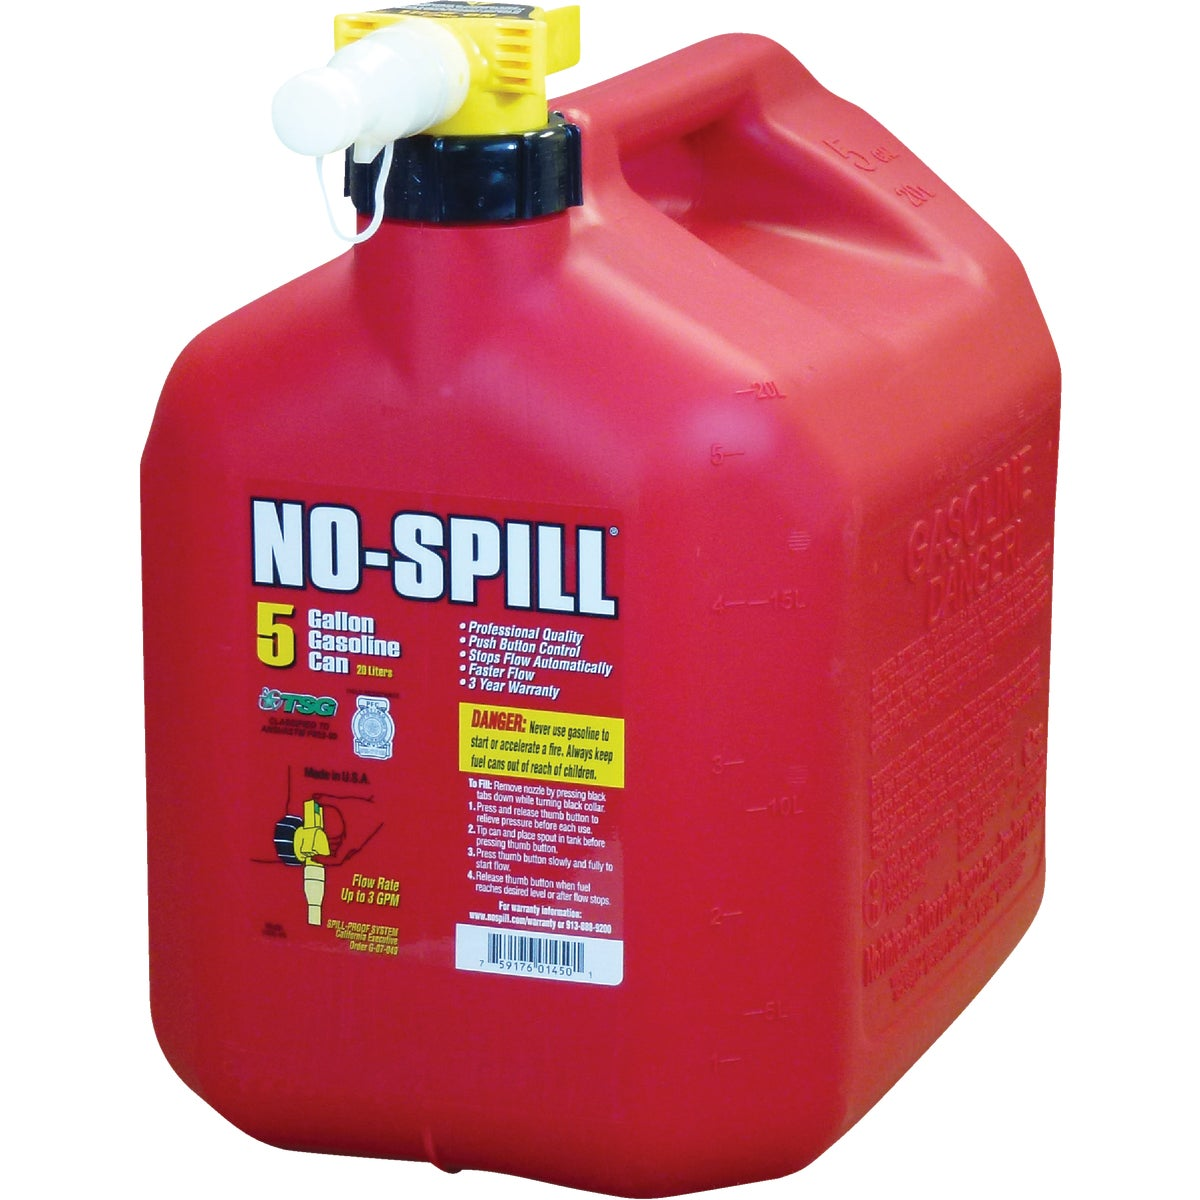 5.0 GAL GAS CAN - 1450 by No Spill Inc